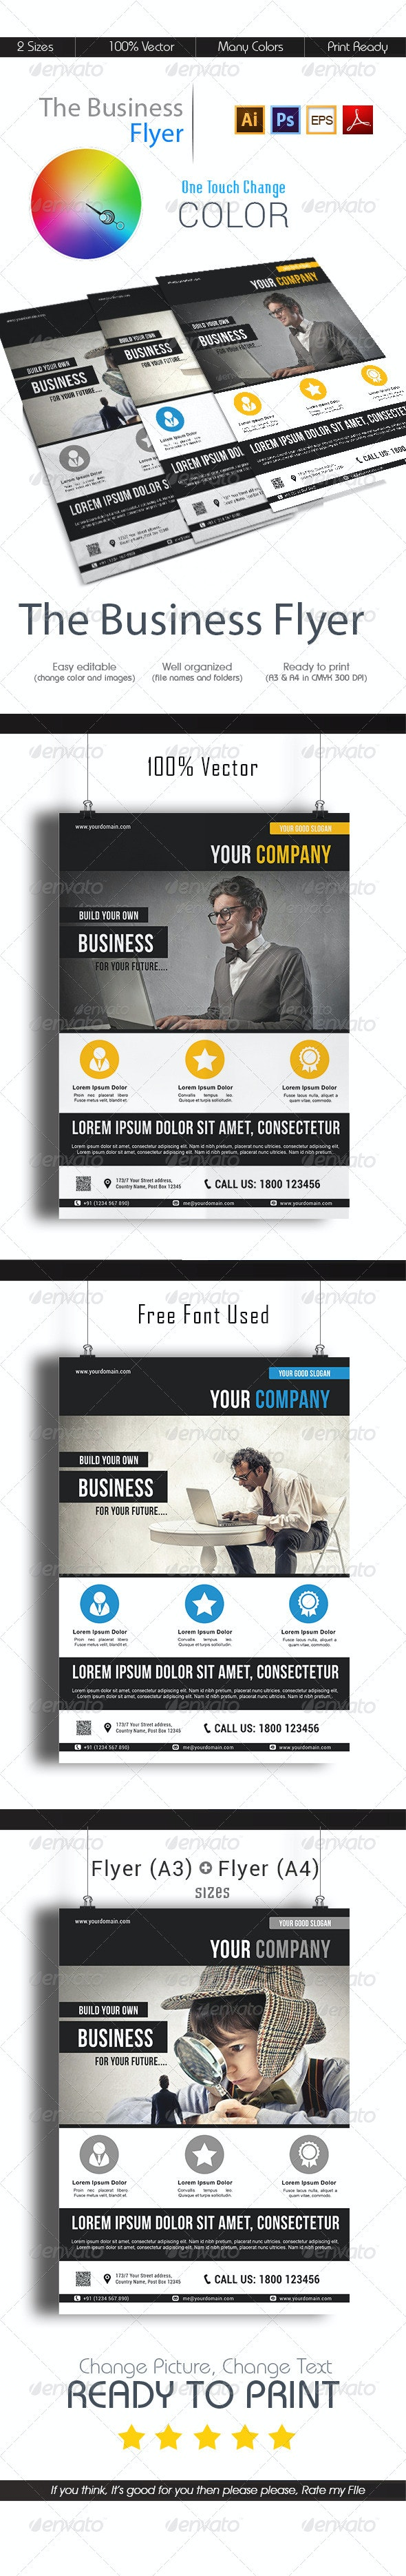 The Business Flyer - Corporate Flyers